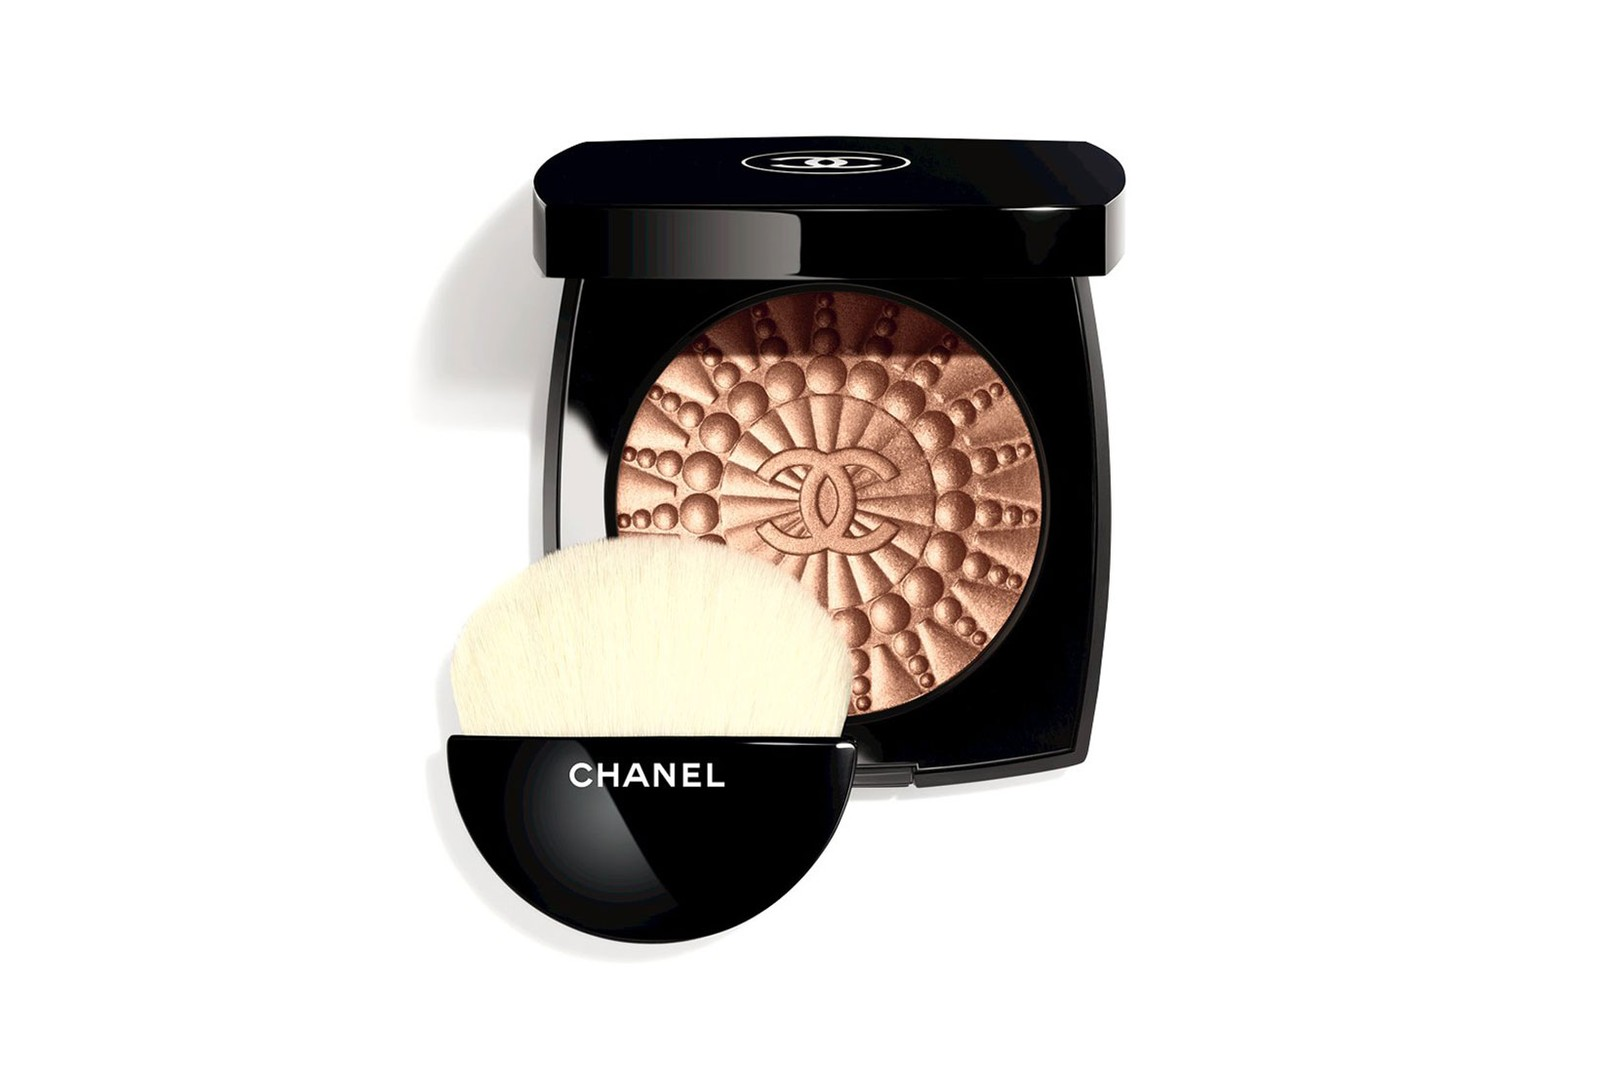 chanel beauty le blanc makeup collection eyeshadow lipsticks highlighters